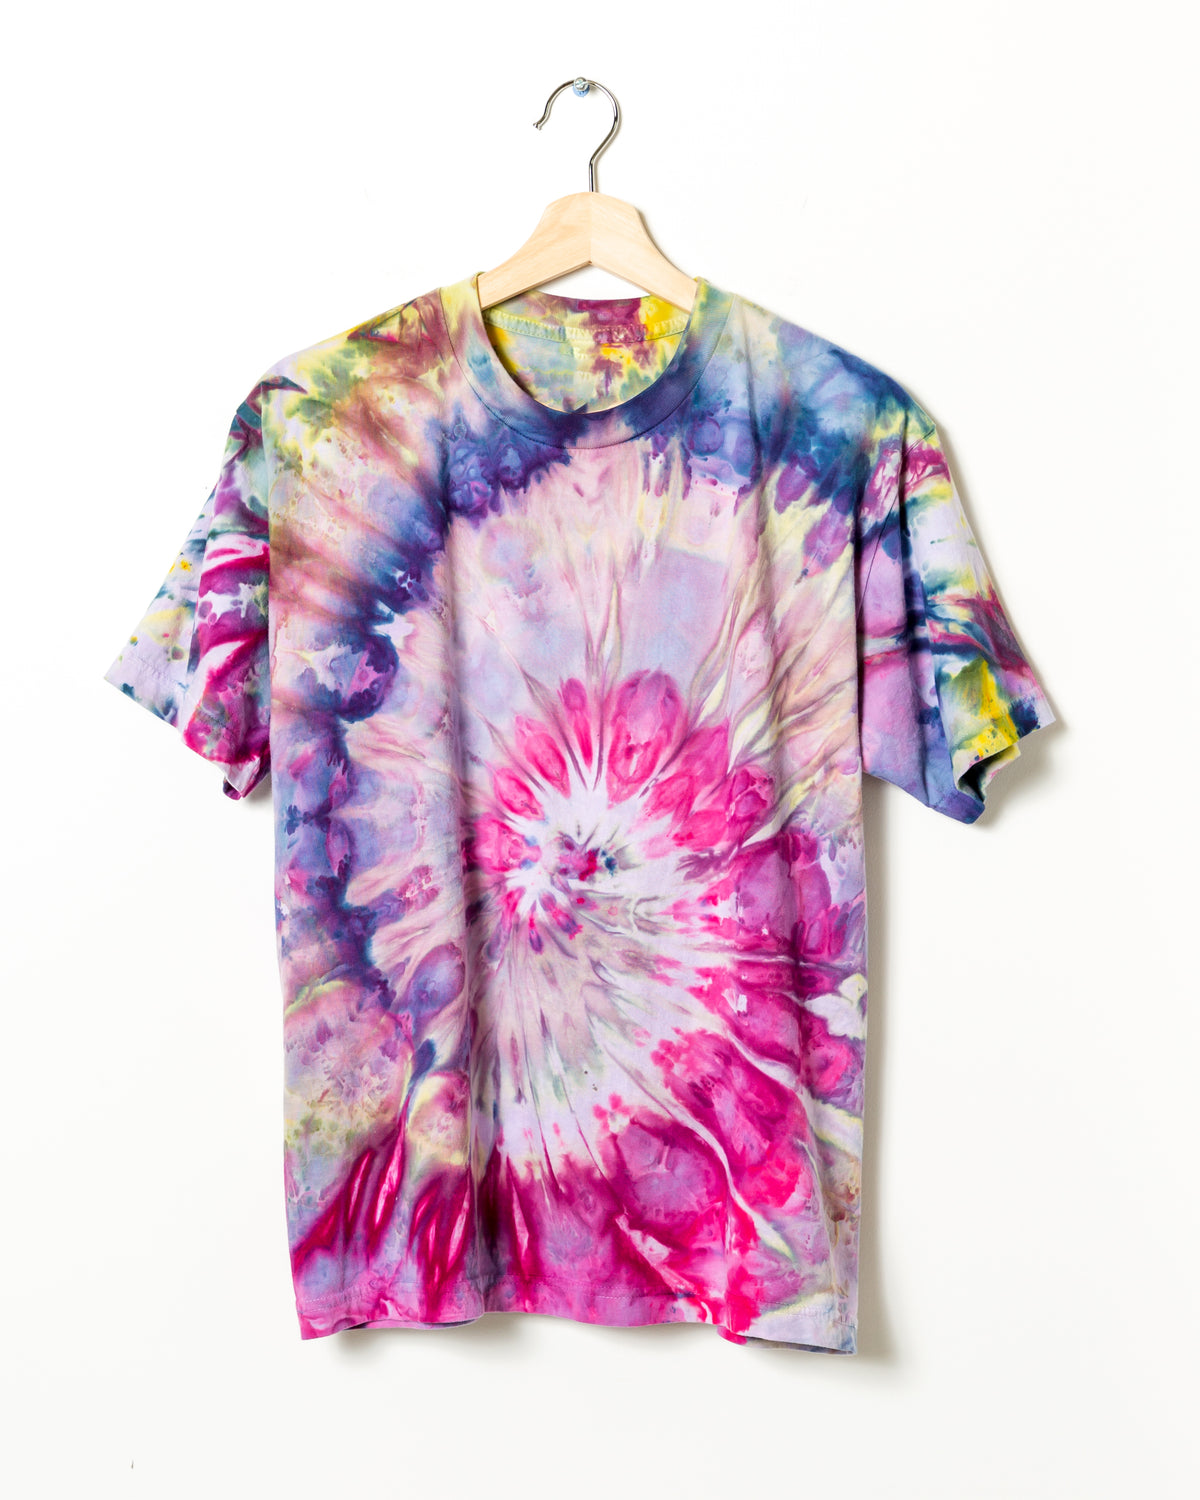 Short Sleeve Tee in Rainbow Swirl - riverside tool & dye